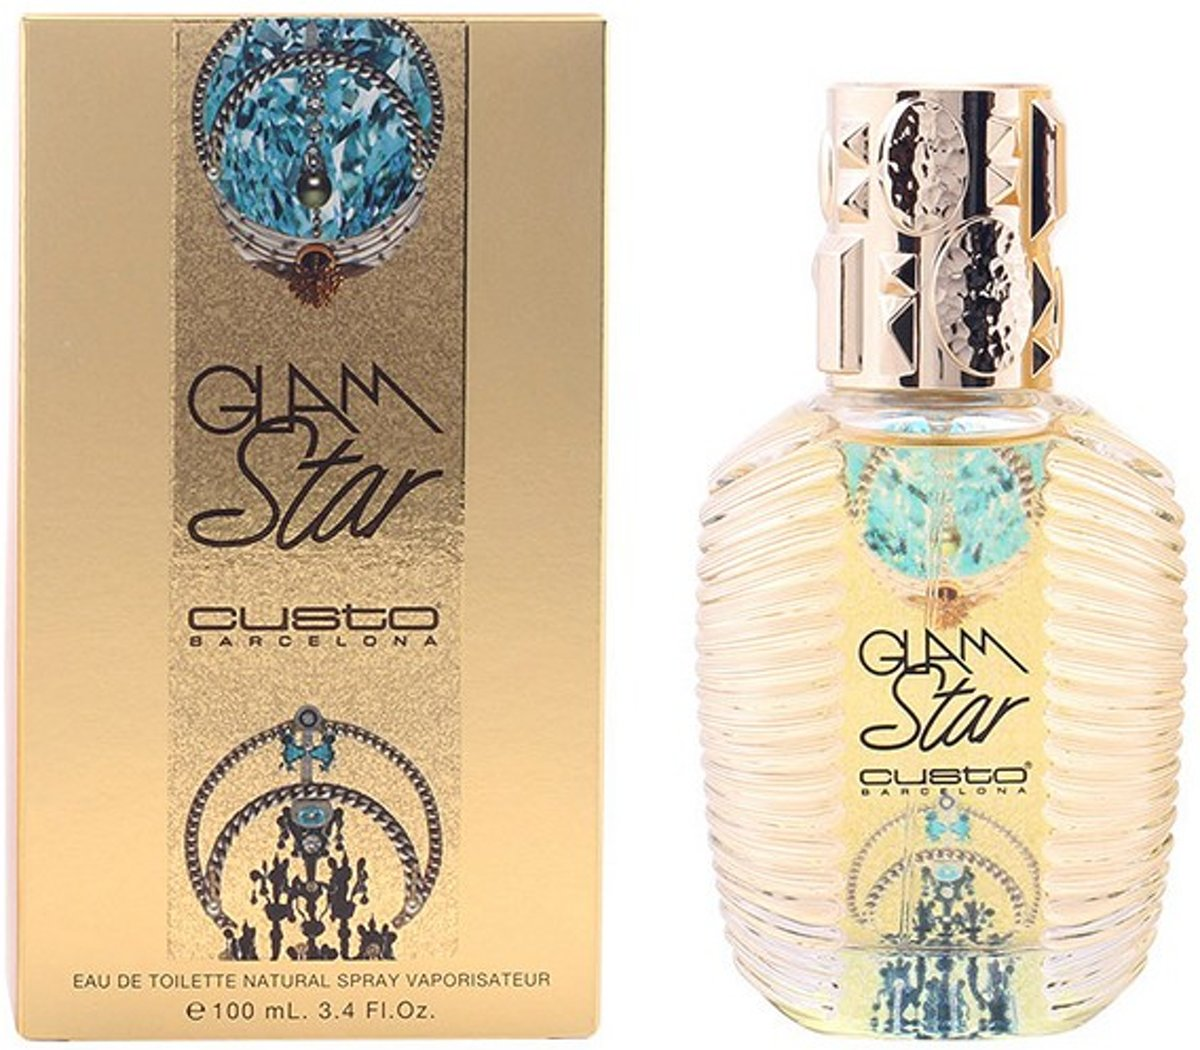 Custo Glas Star - 50 ml - Eau de toilette